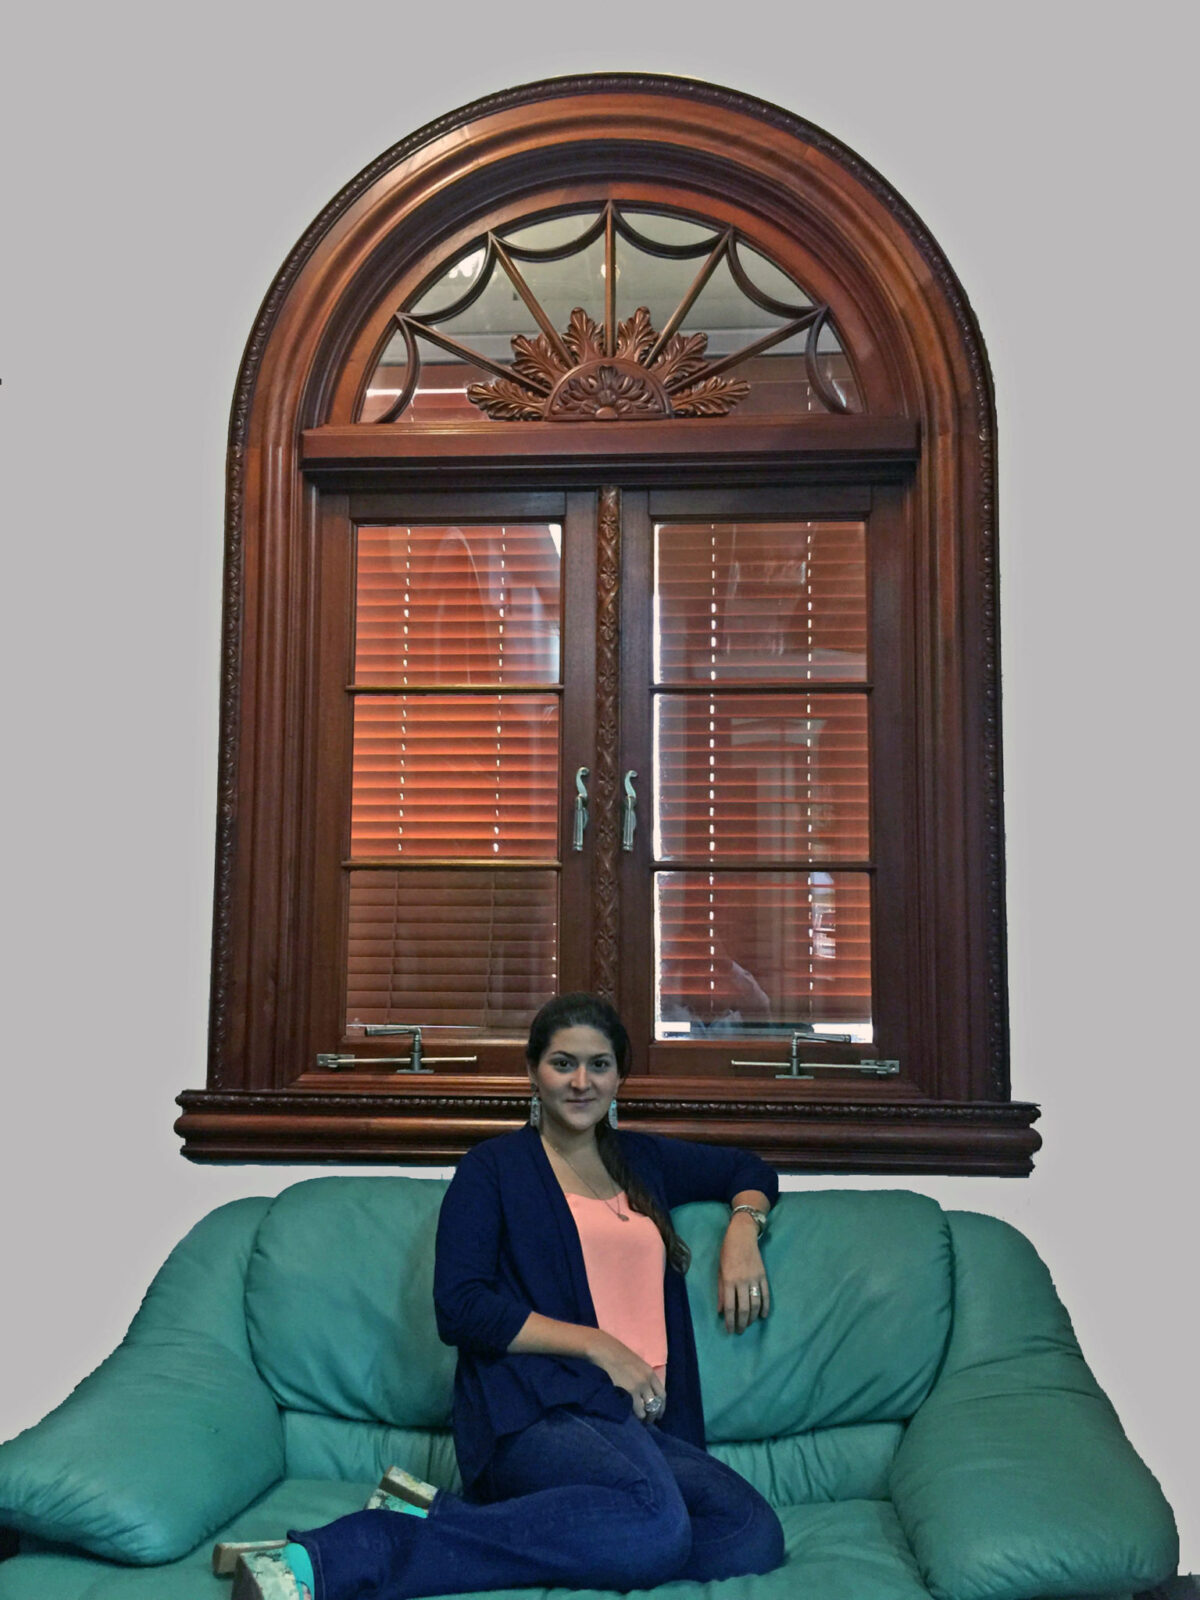 MEDICI MAHOGANY WINDOW